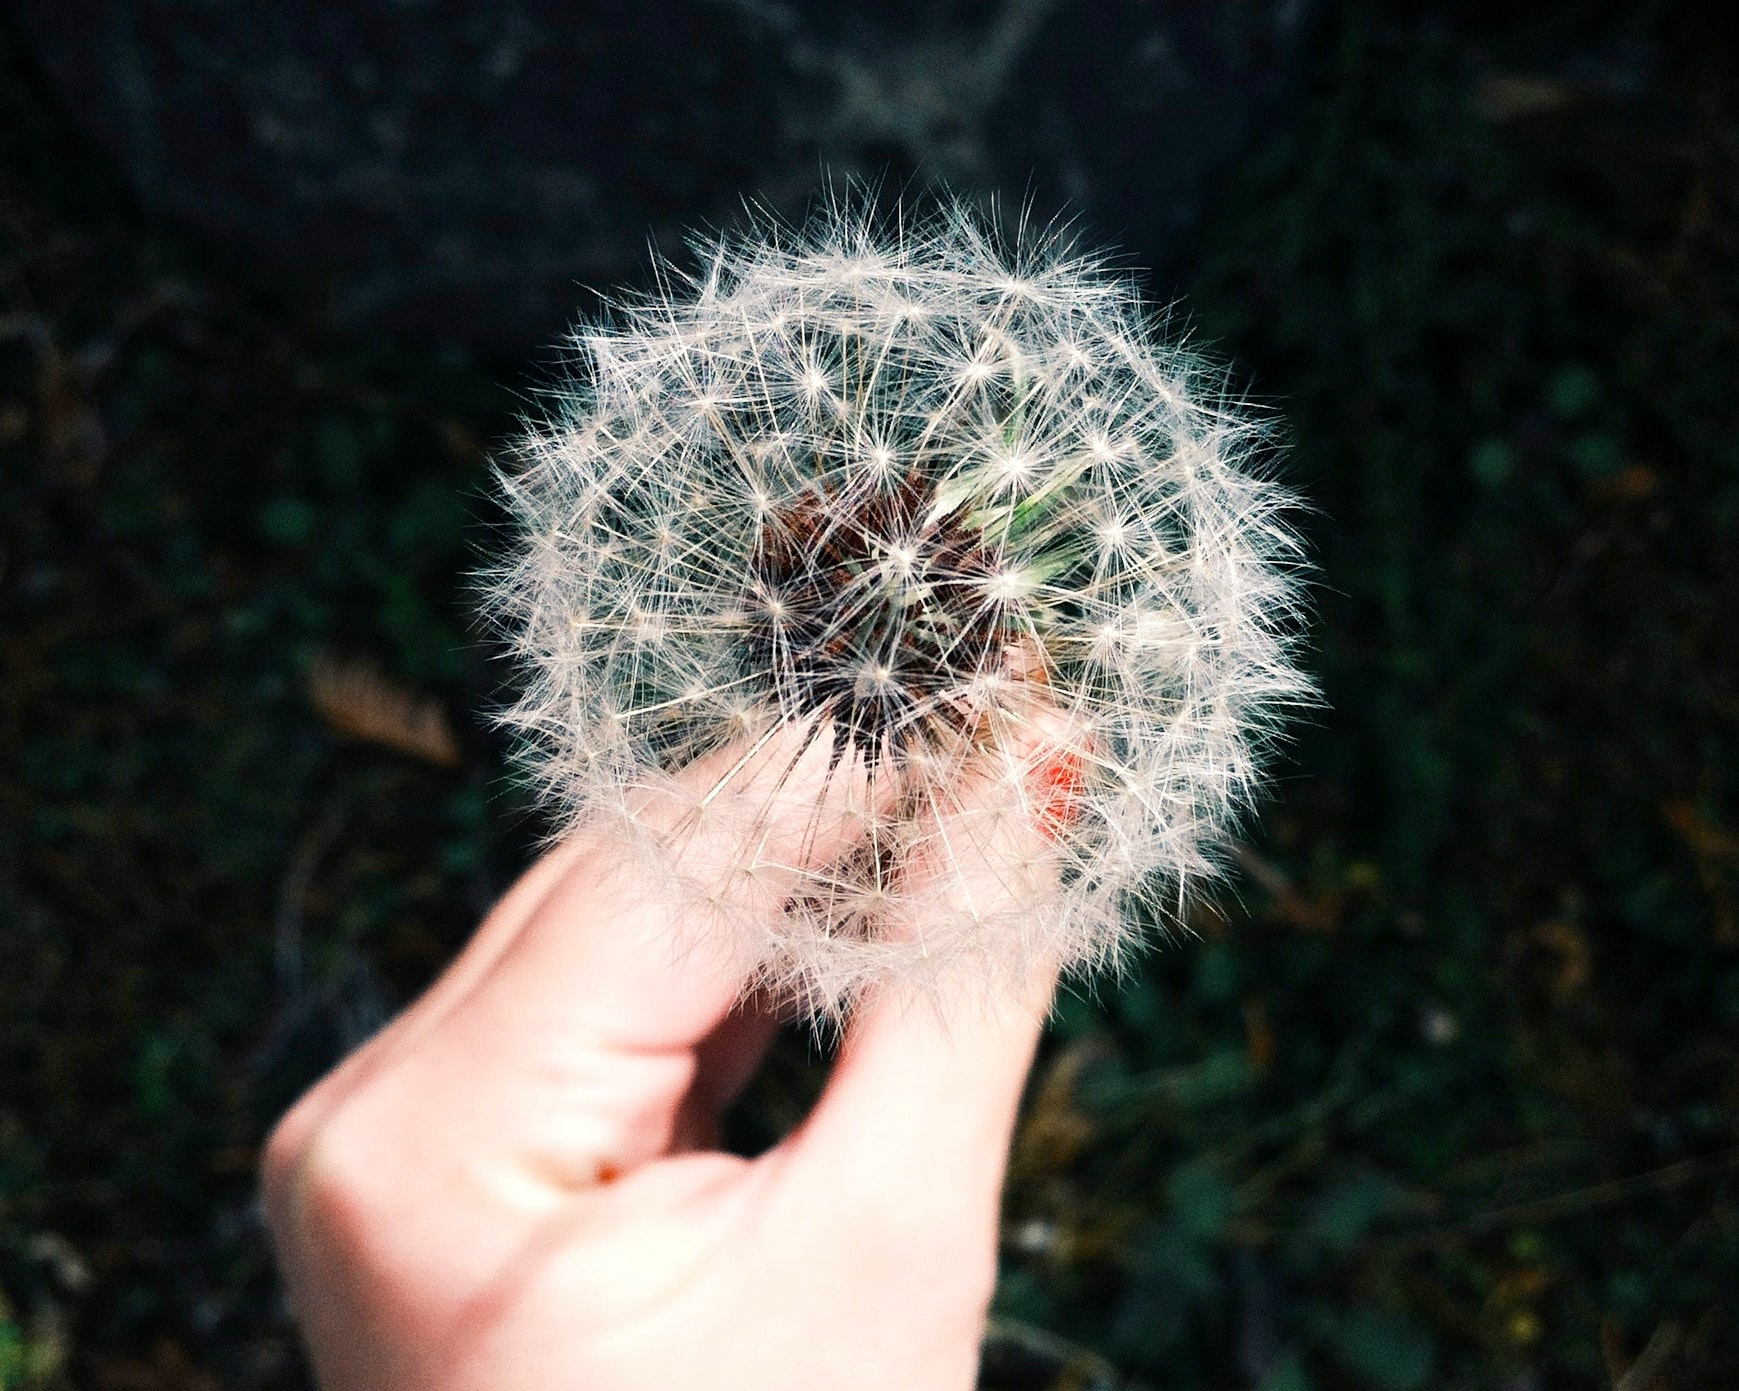 A woman's hand holding a delicate seeding dandelion